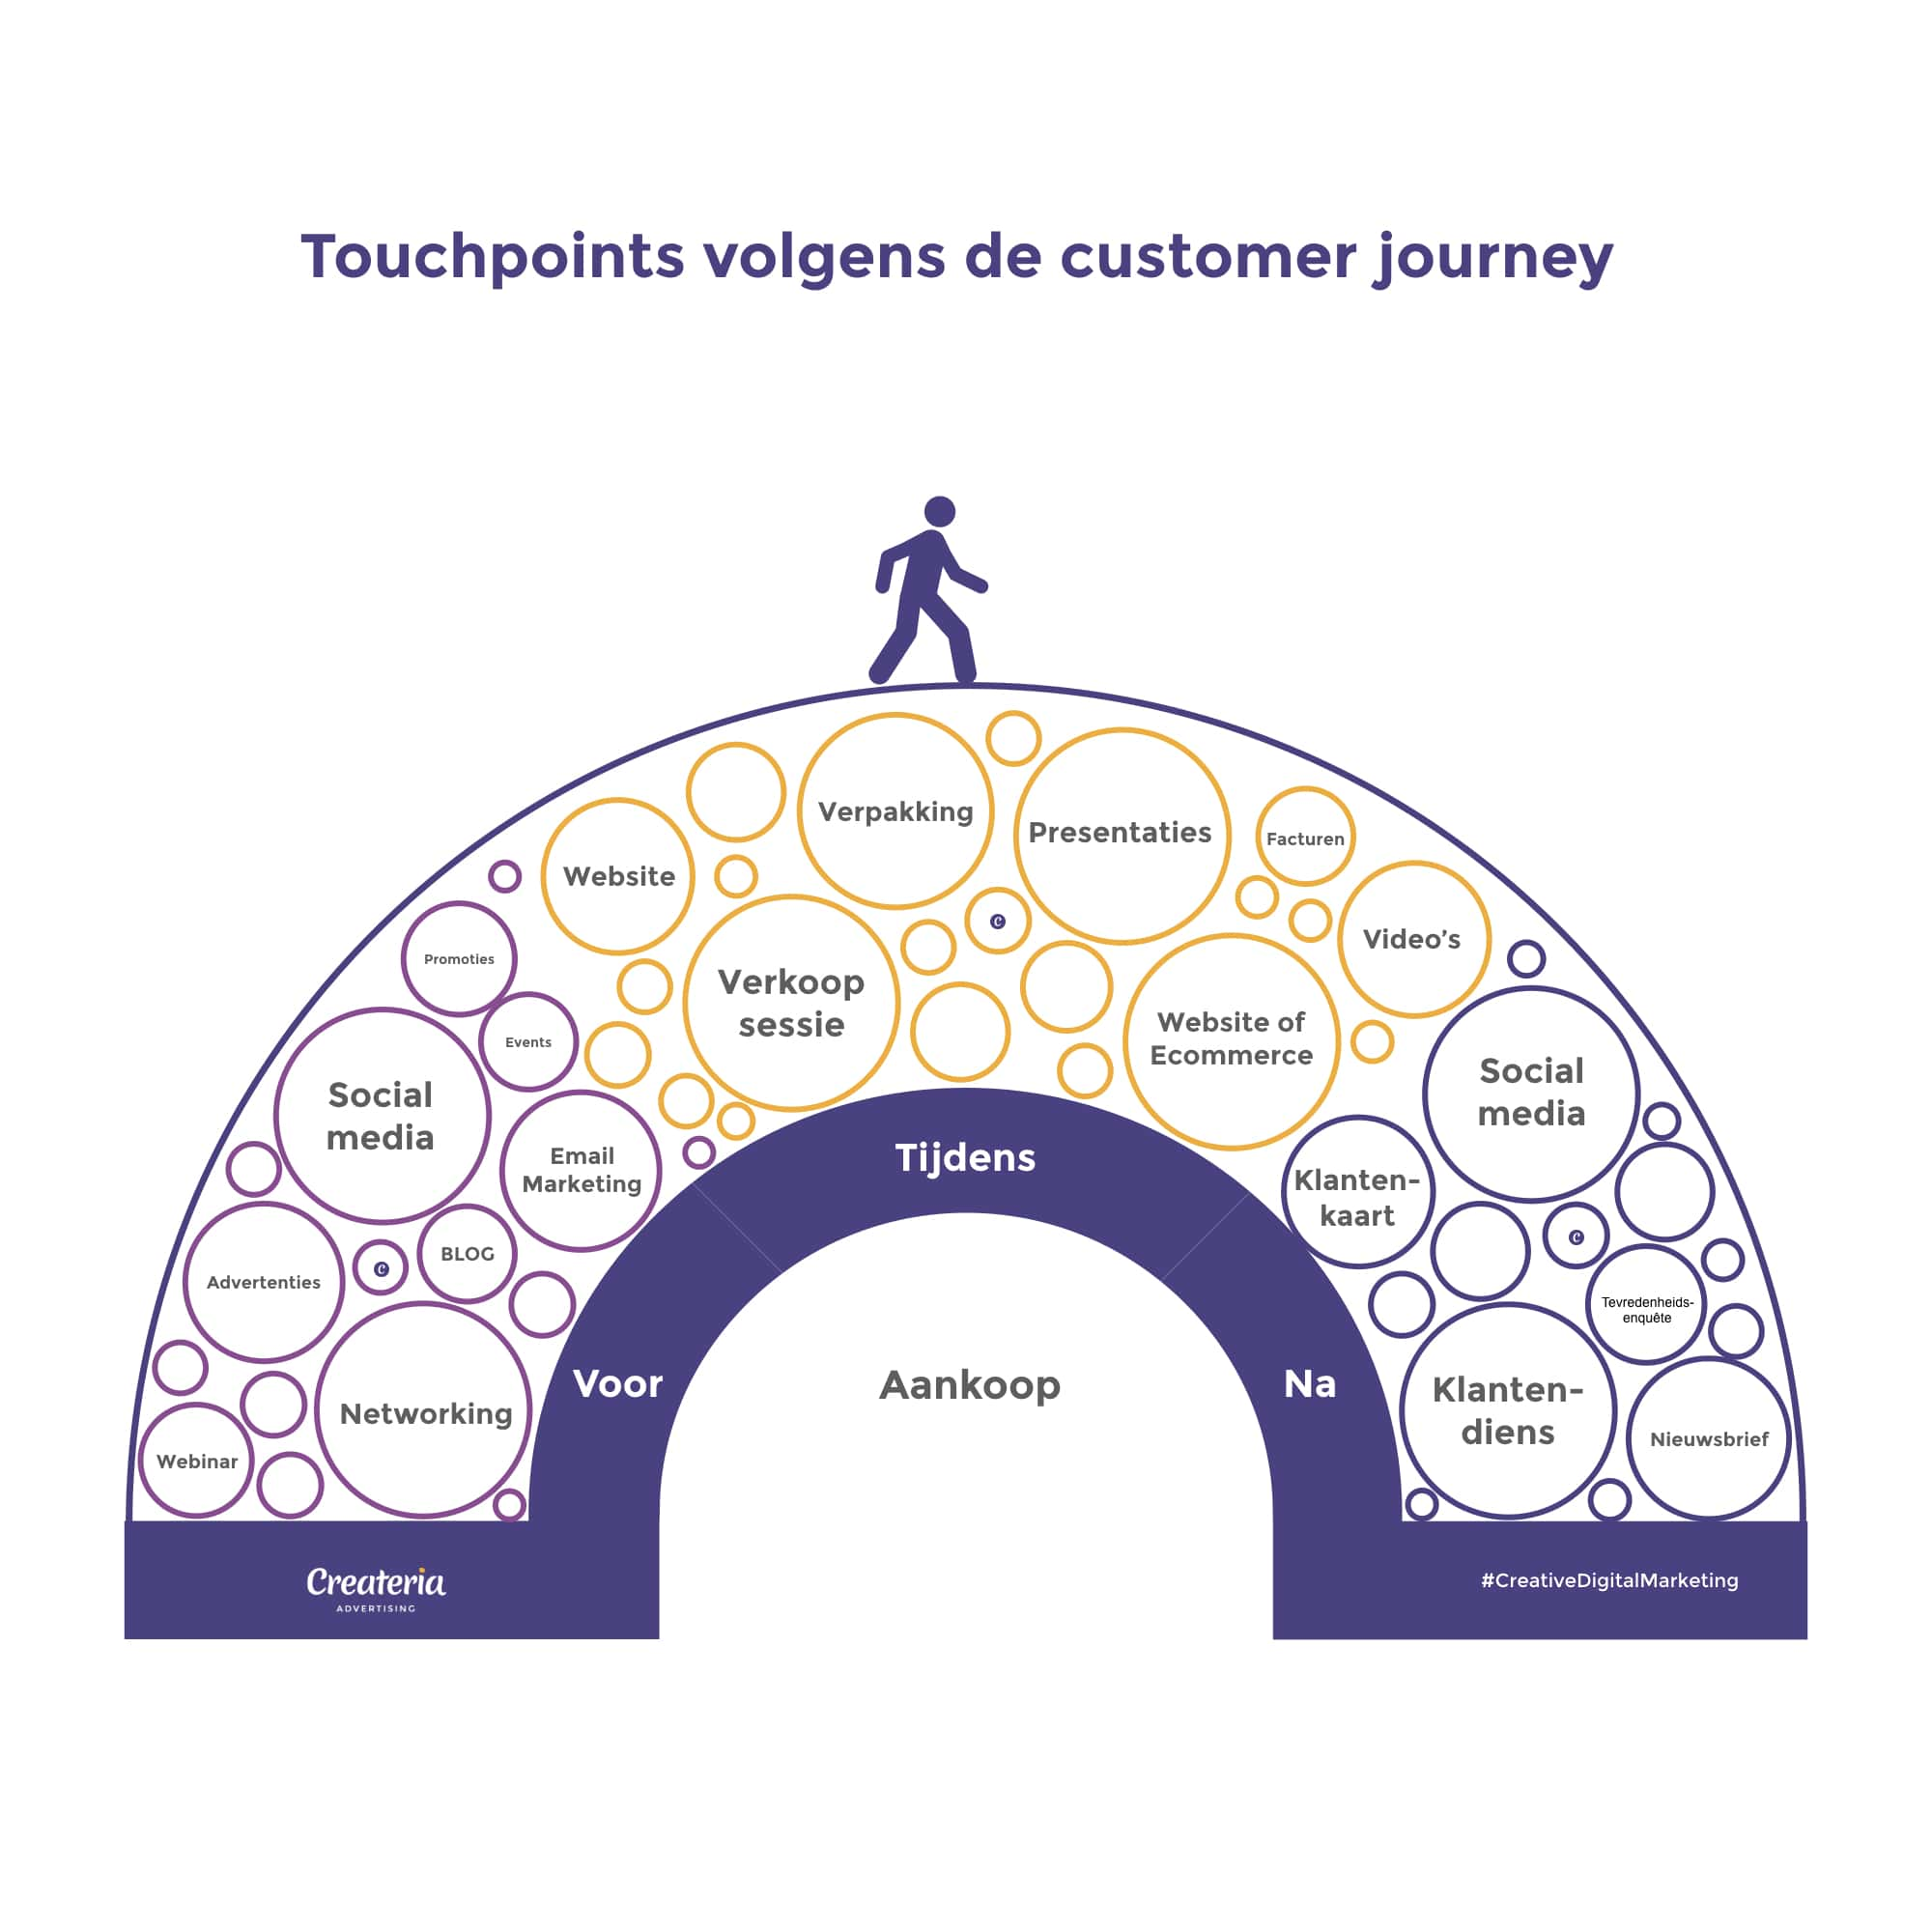 Touchpoints volgens de customer journey